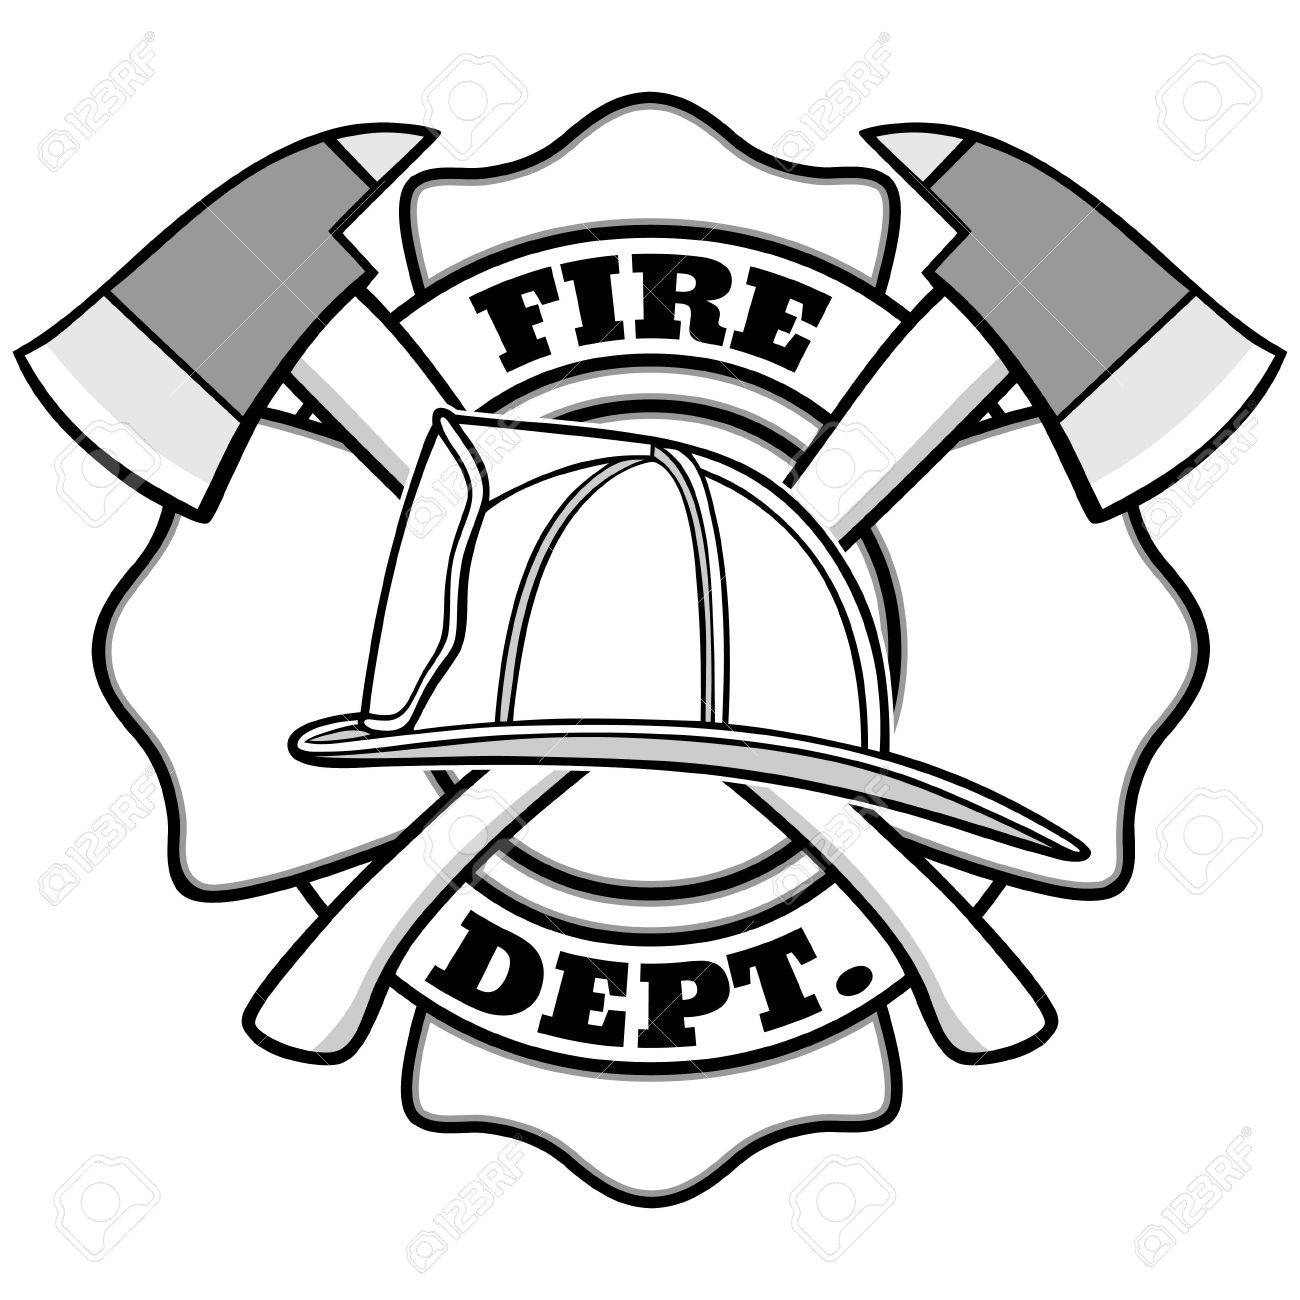 Firefighter Badge Illustration.